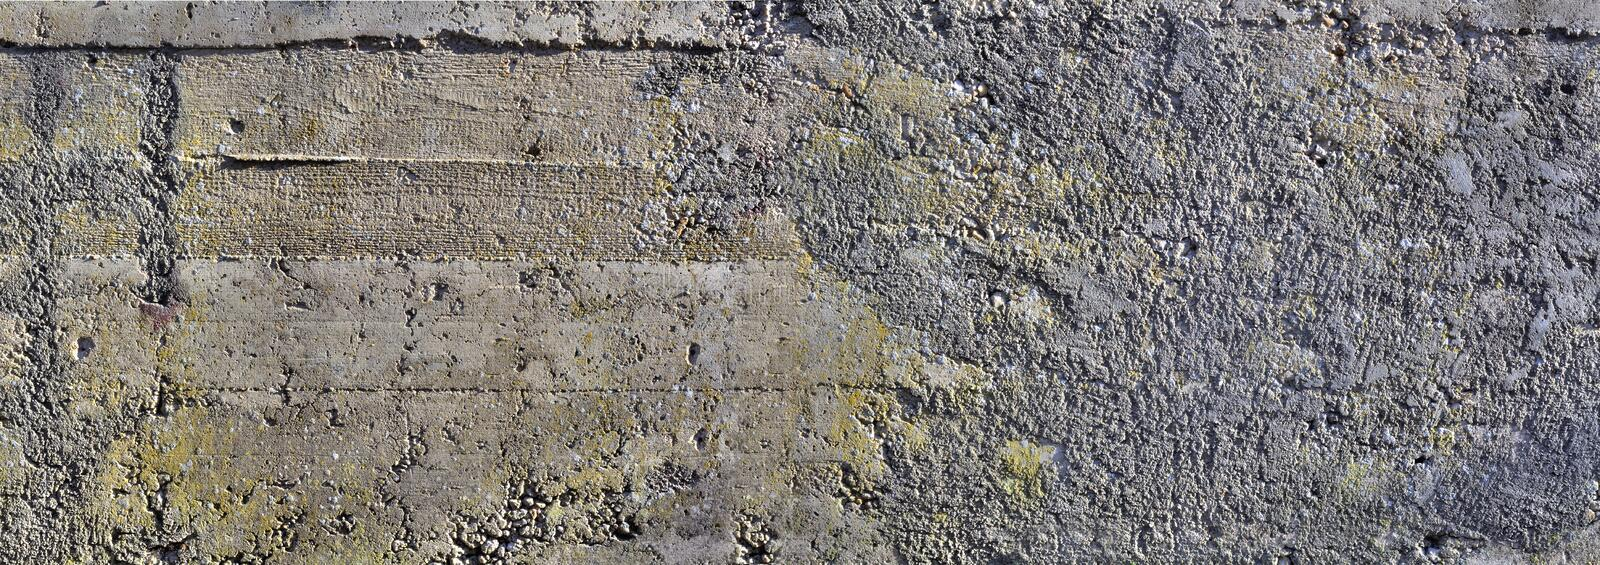 Download Conrete Wall stock image. Image of background, rough - 21786269